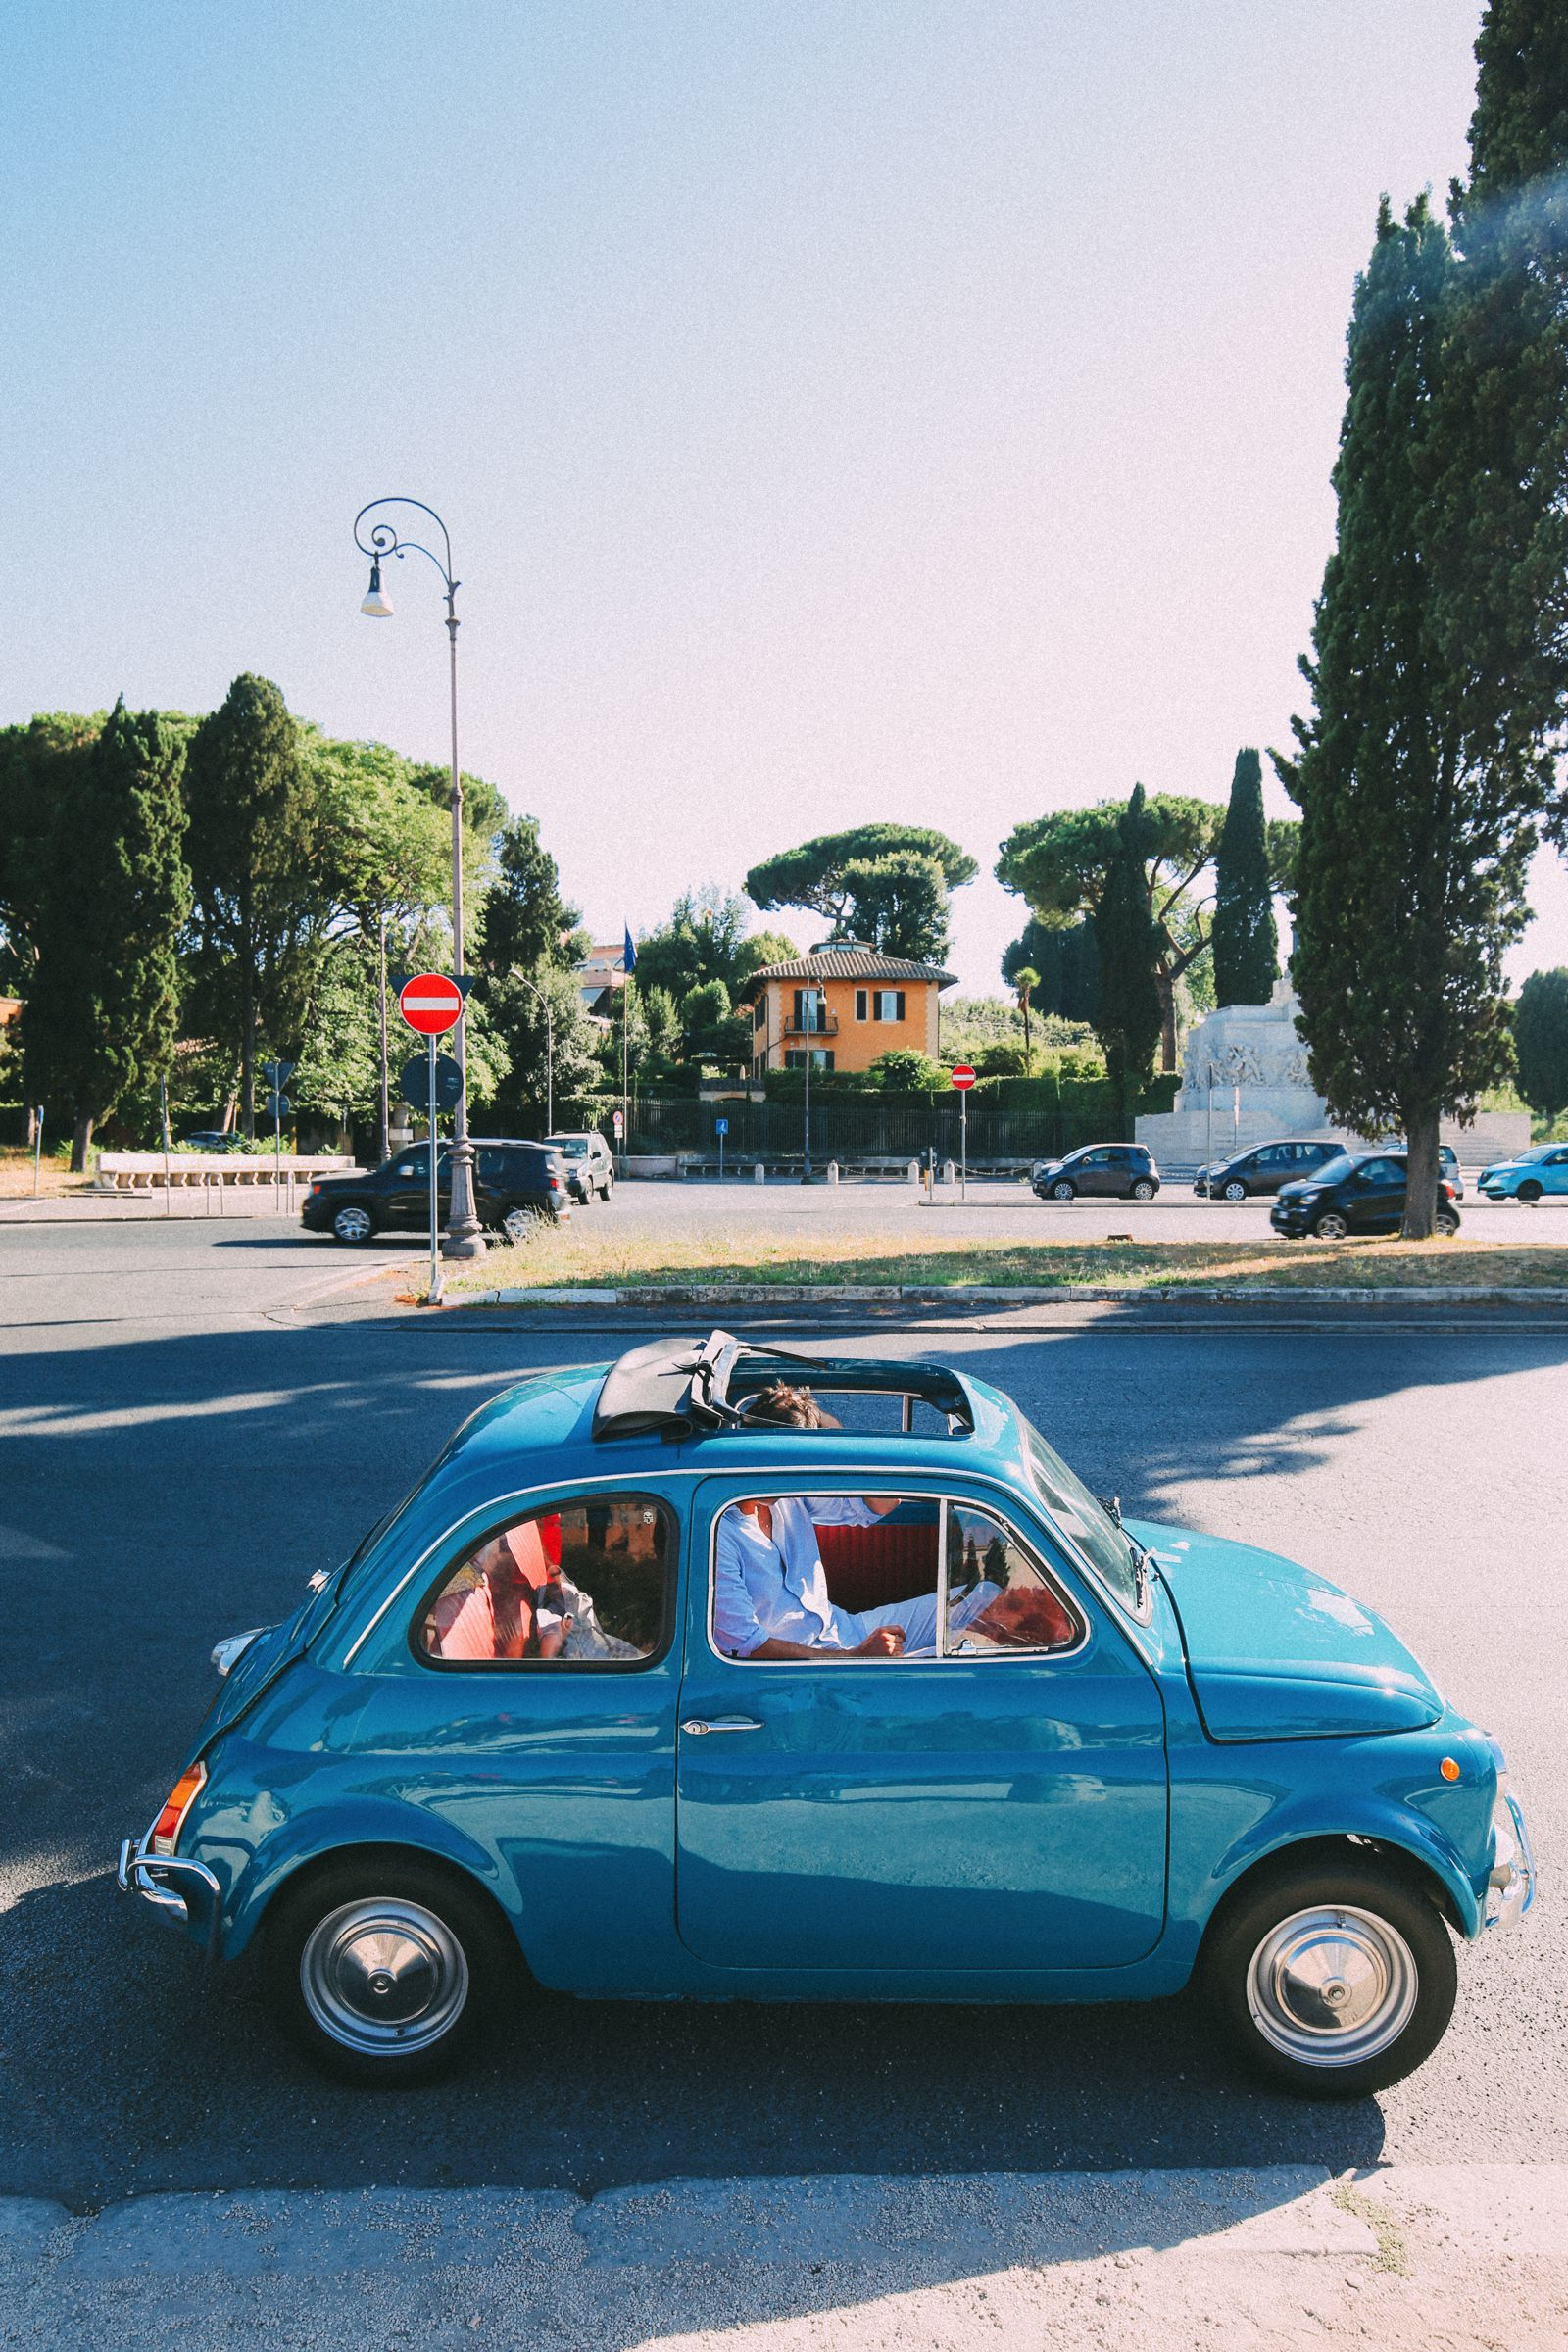 The Complete Weekend Guide On Things To See And Do In Rome (32)